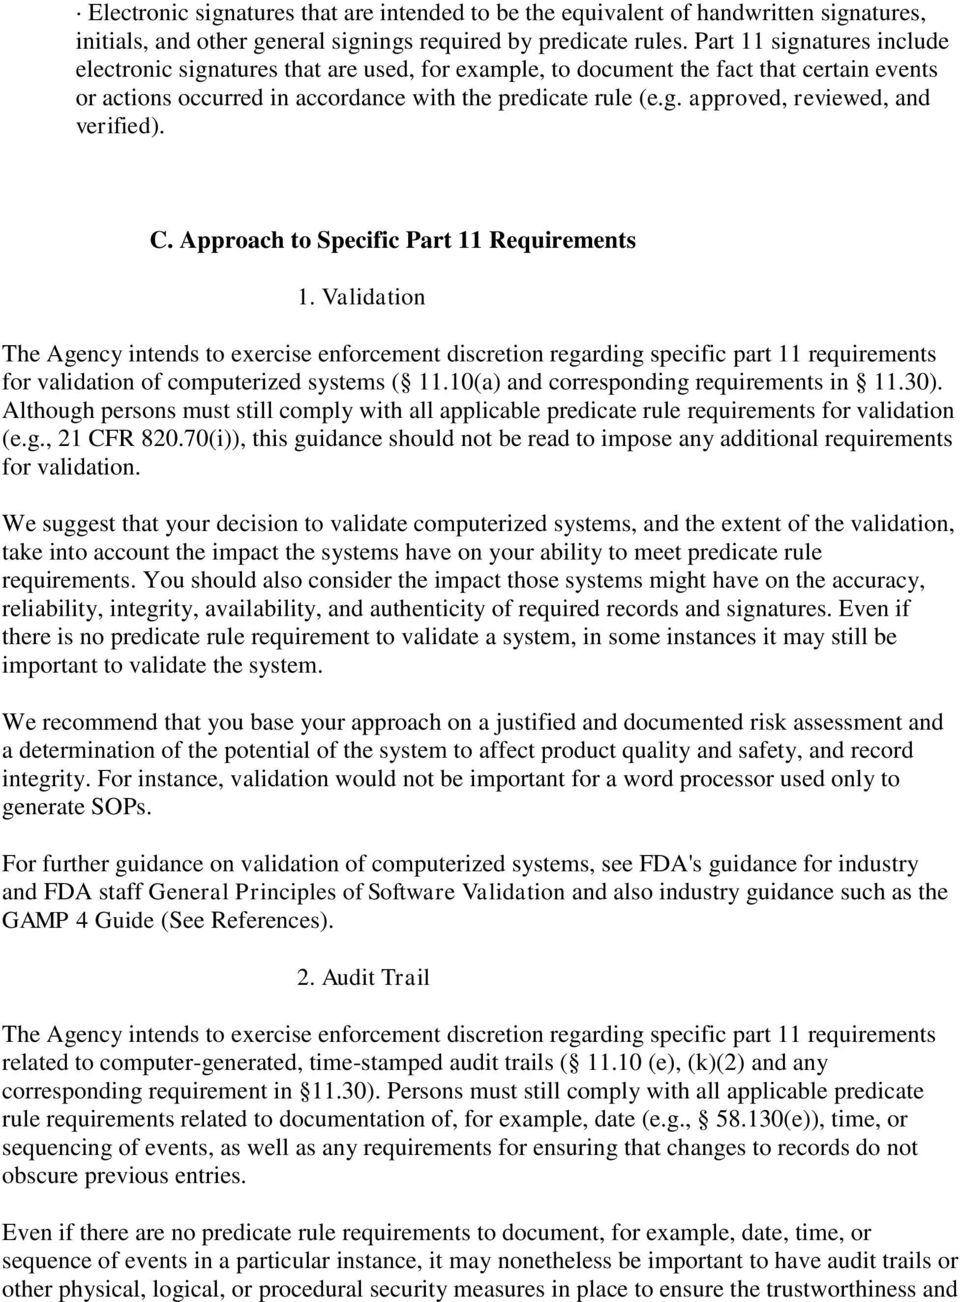 C. Approach to Specific Part 11 Requirements 1. Validation The Agency intends to exercise enforcement discretion regarding specific part 11 requirements for validation of computerized systems ( 11.